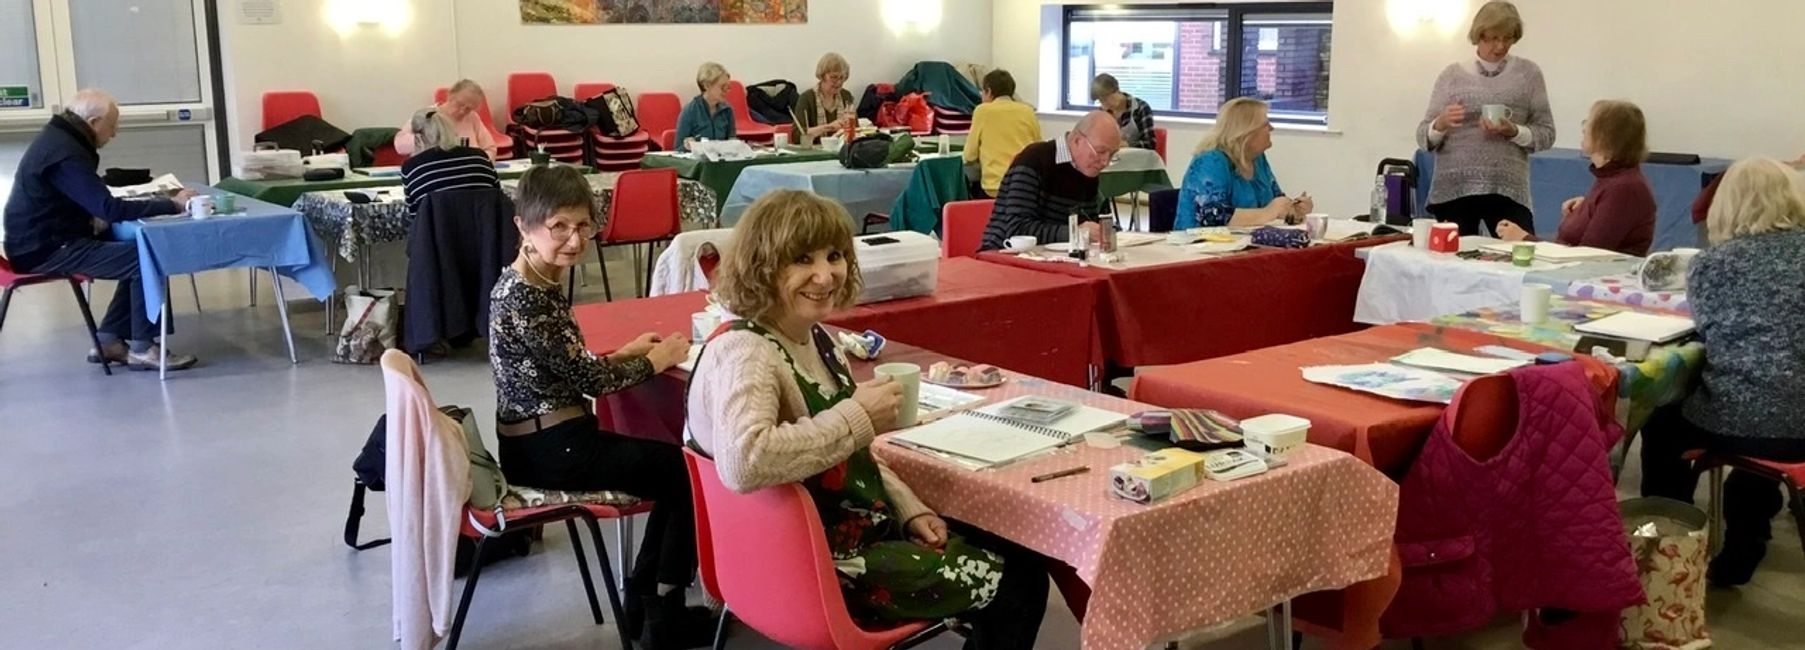 Helen's Art Class Thursday Group - New Park Centre, Chichester- Everyone hard at work